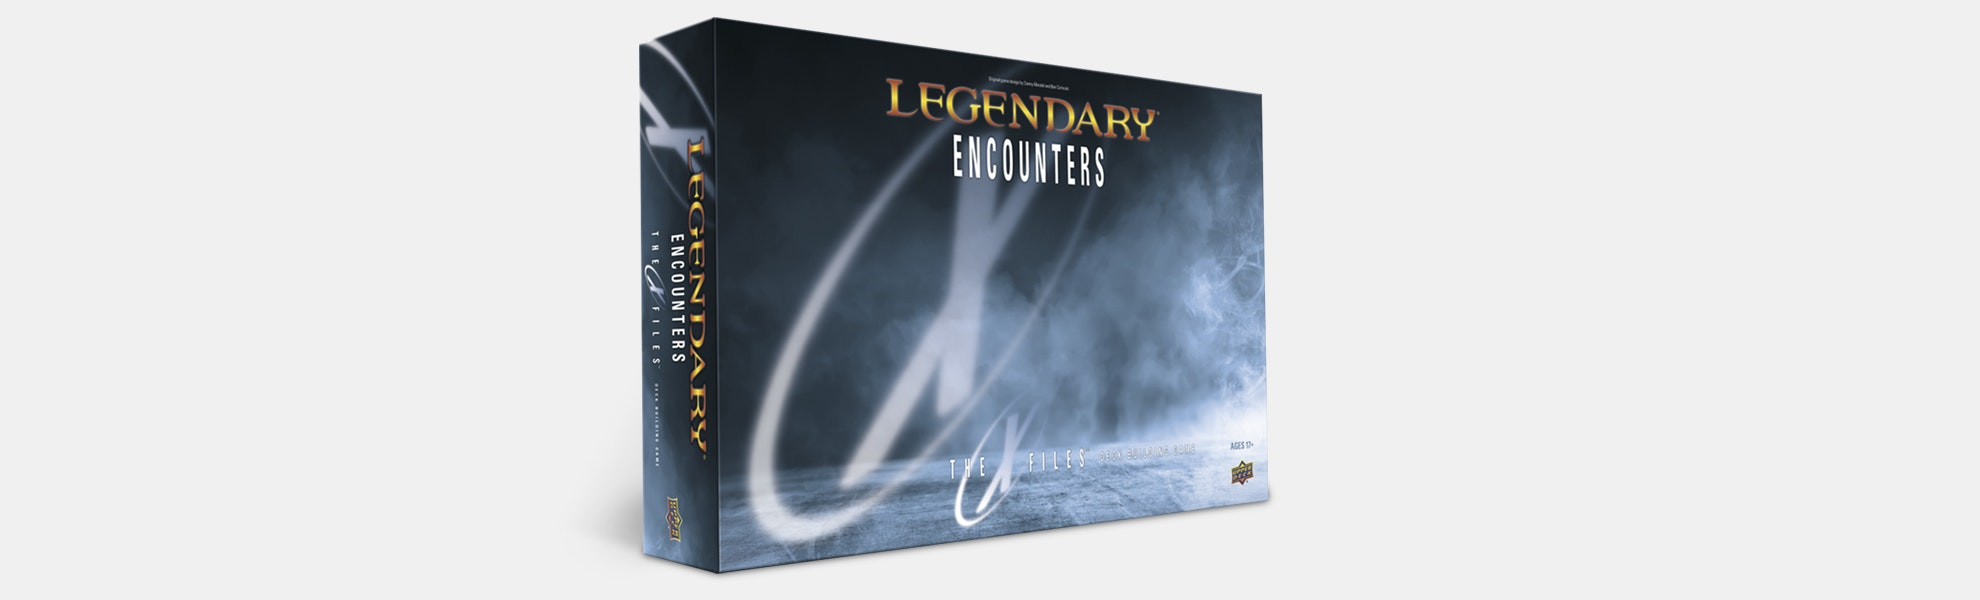 Legendary Encounters: The X-Files Board Game